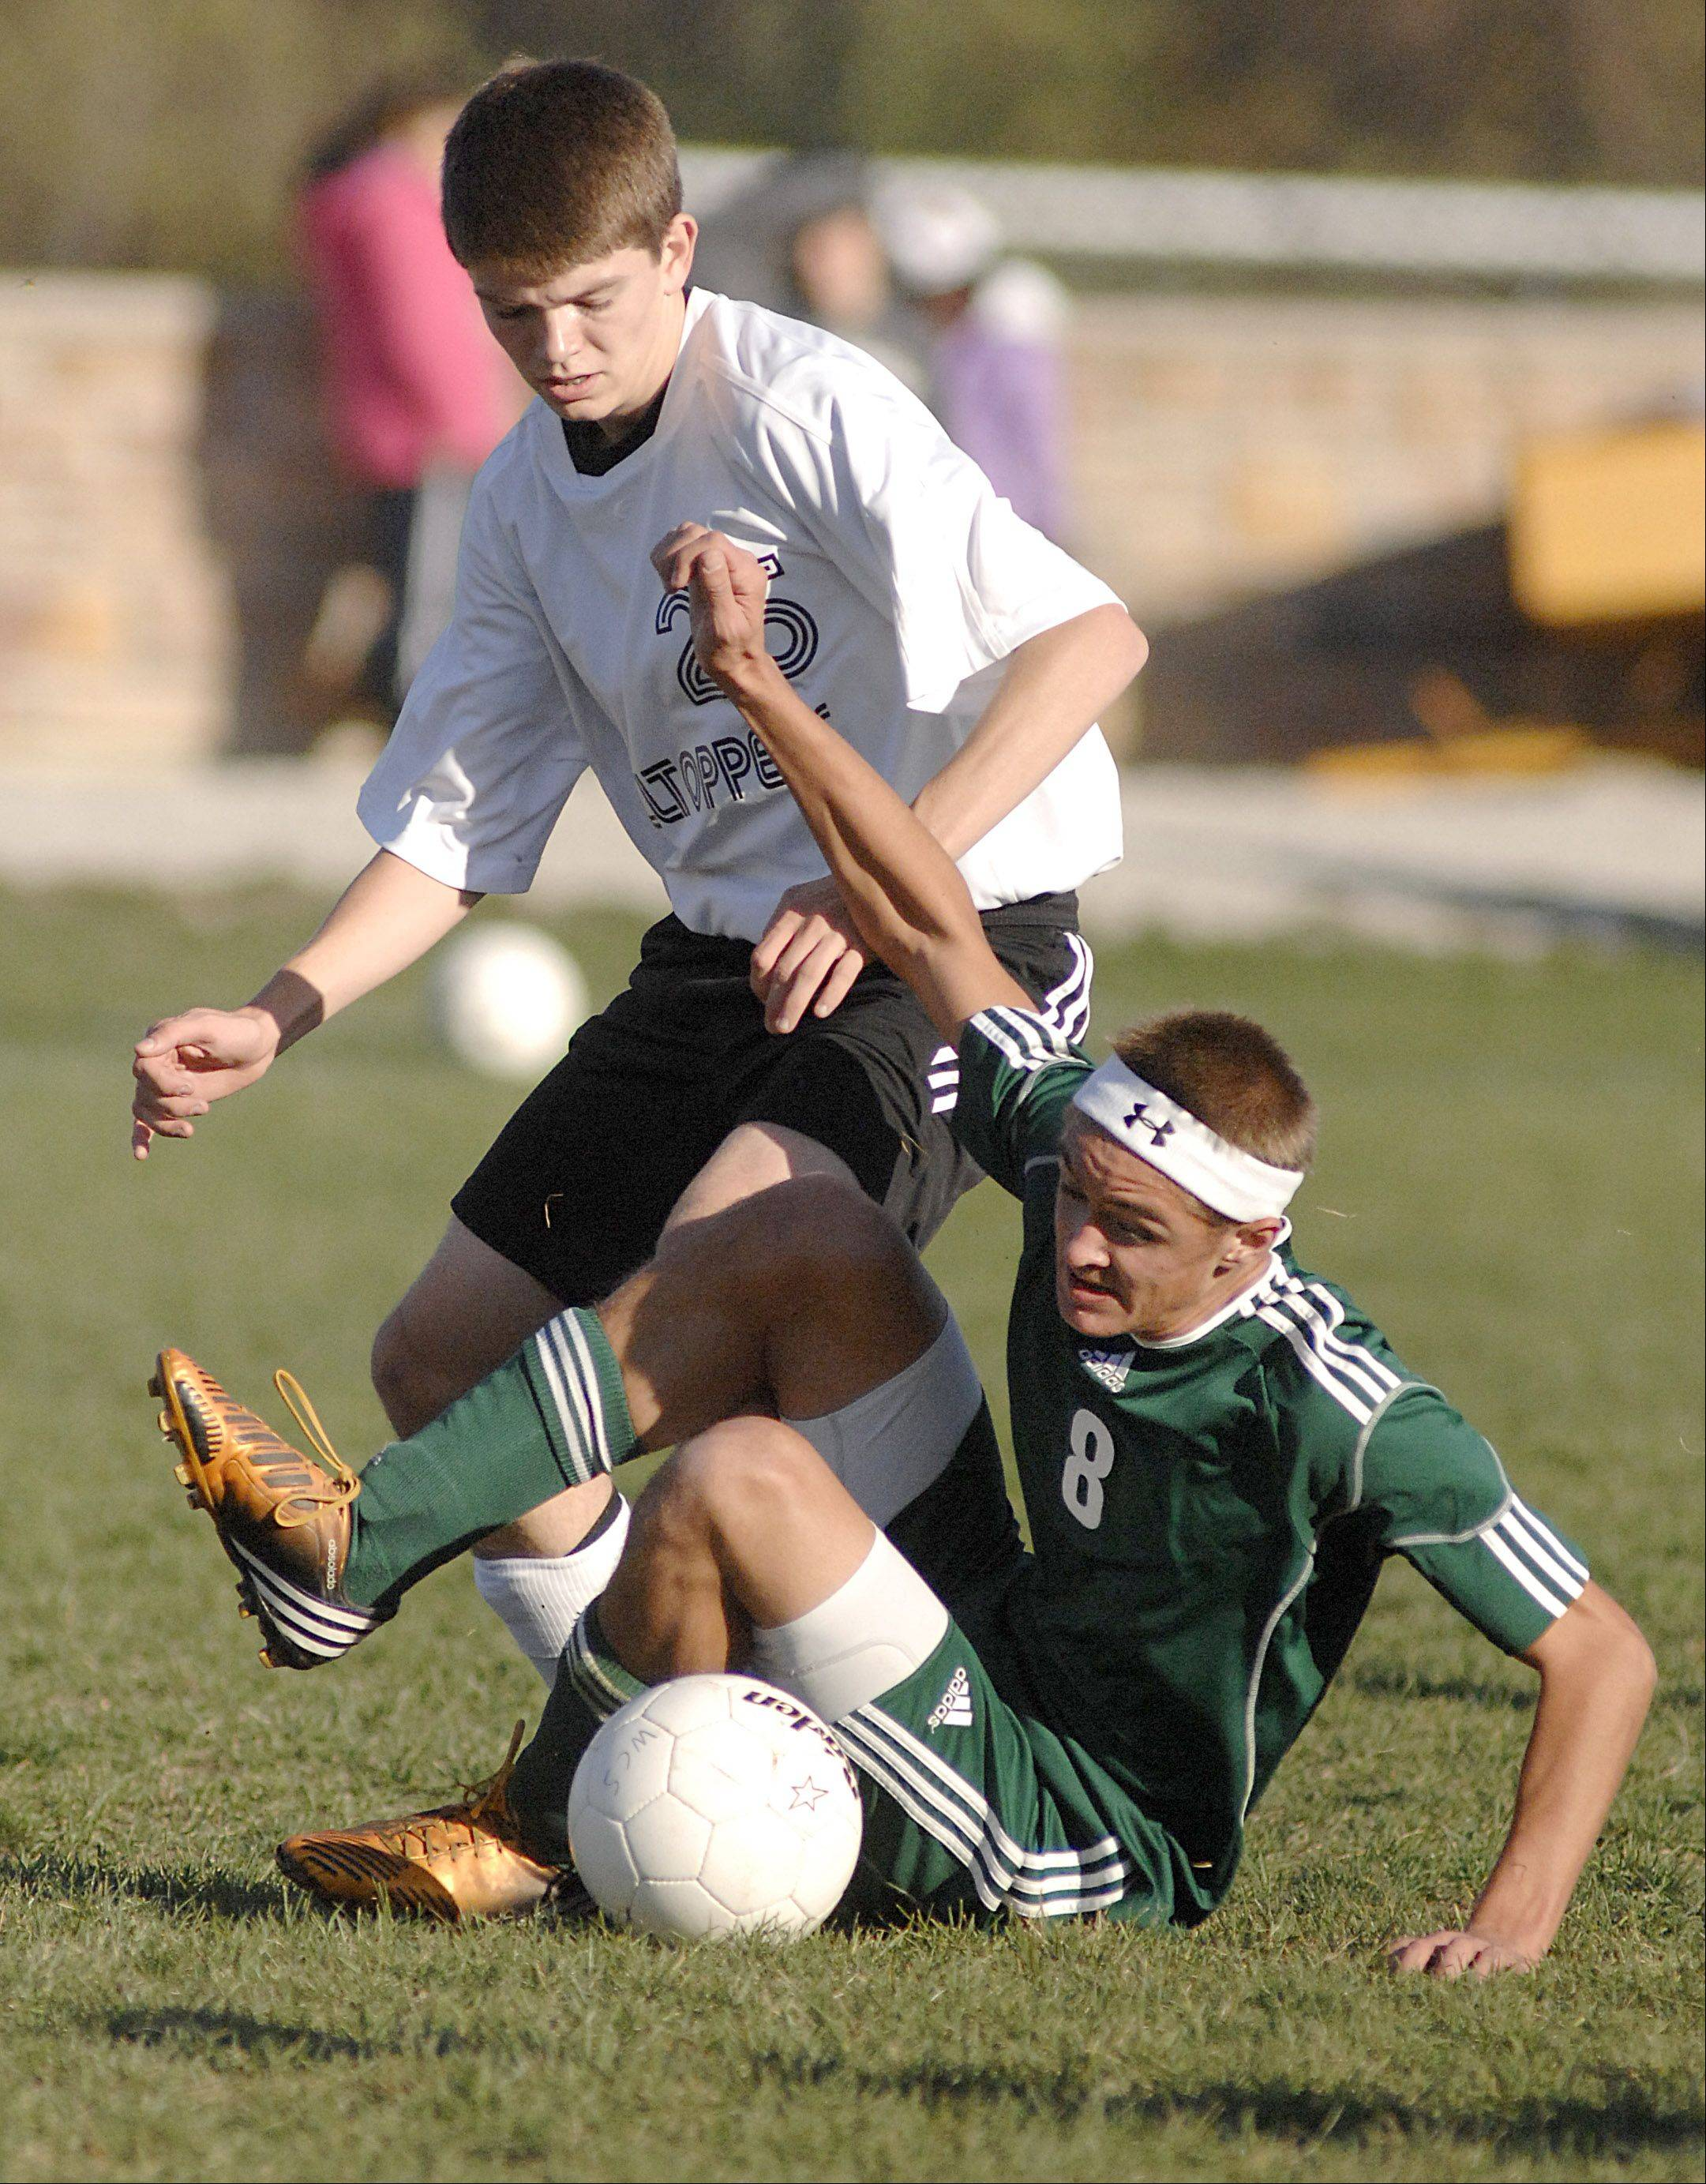 St. Edward's Johnny Shepherd tumbles as he and Elgin Academy's Billy Gracik battle for the ball Wednesday.